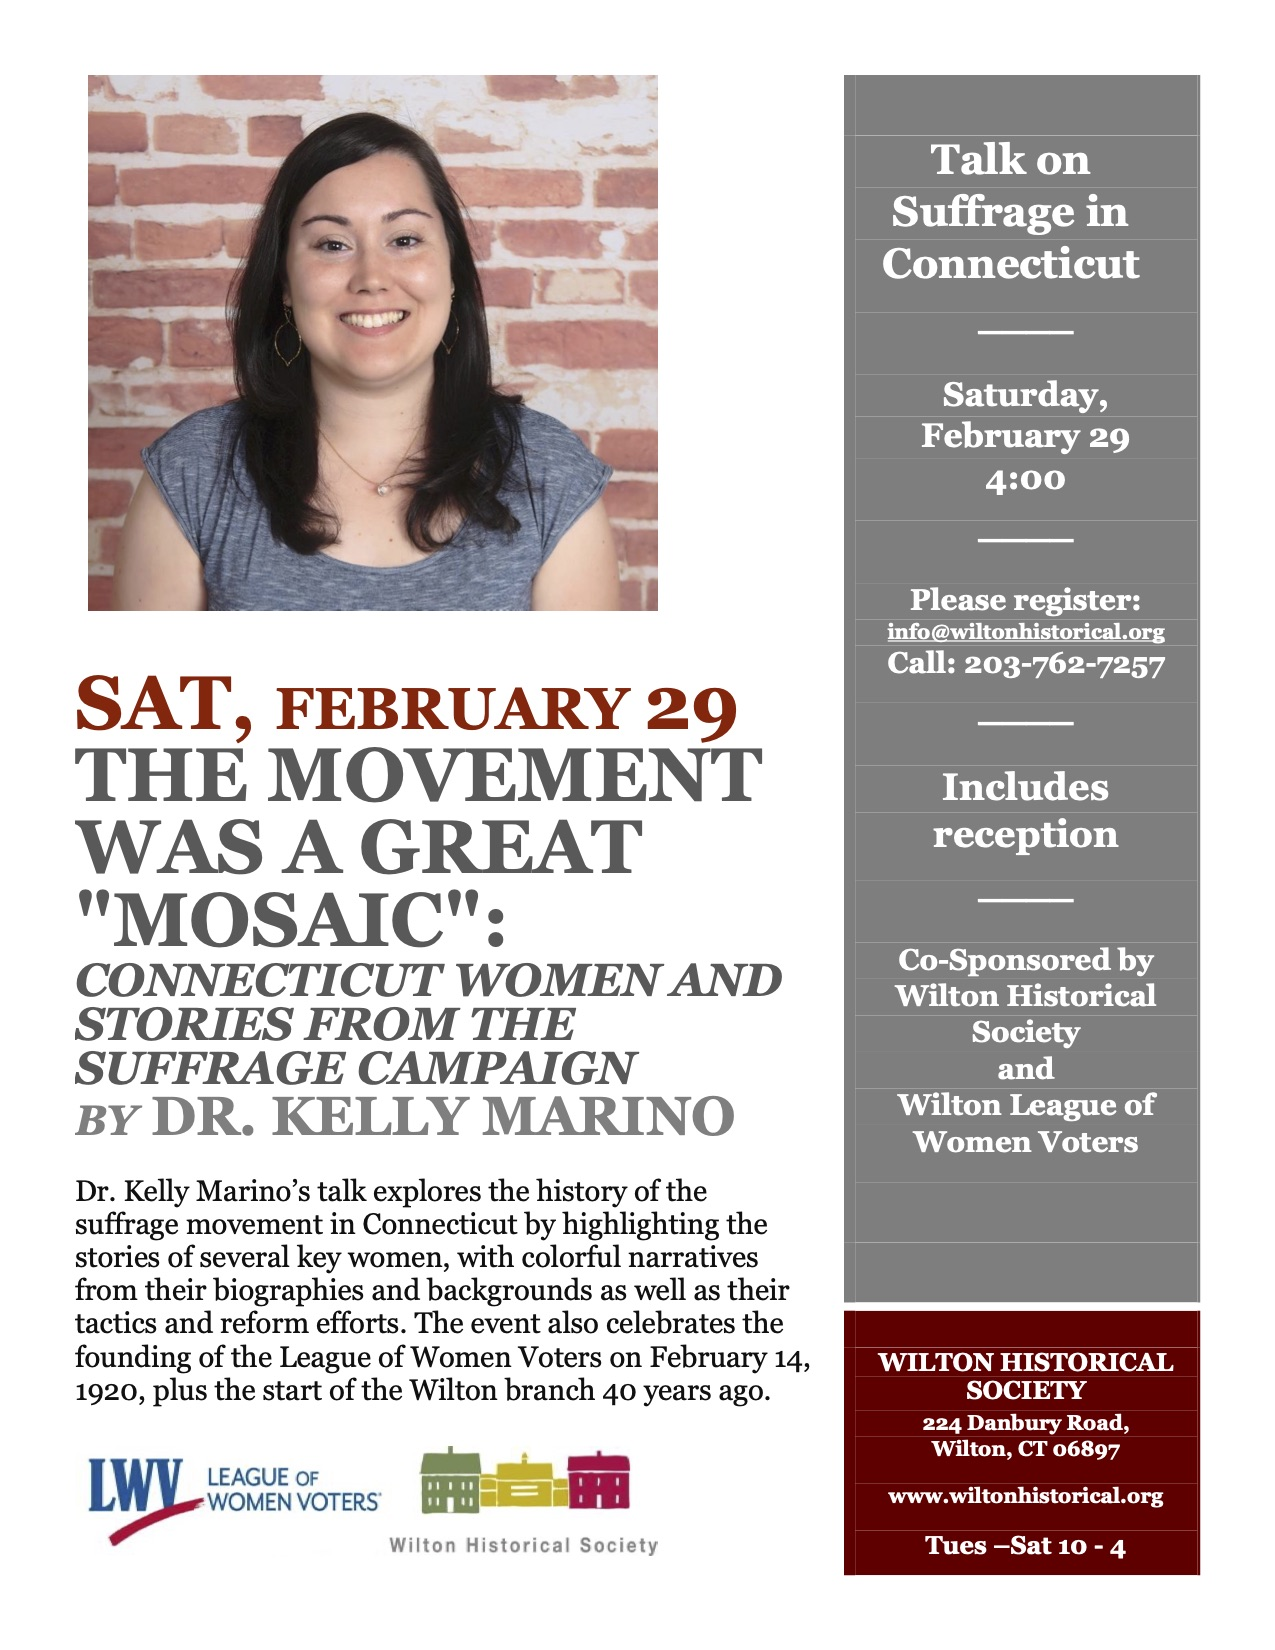 Flyer Suffrage Lecture Great Mosaic Kelly Marino Feb 2020.jpg